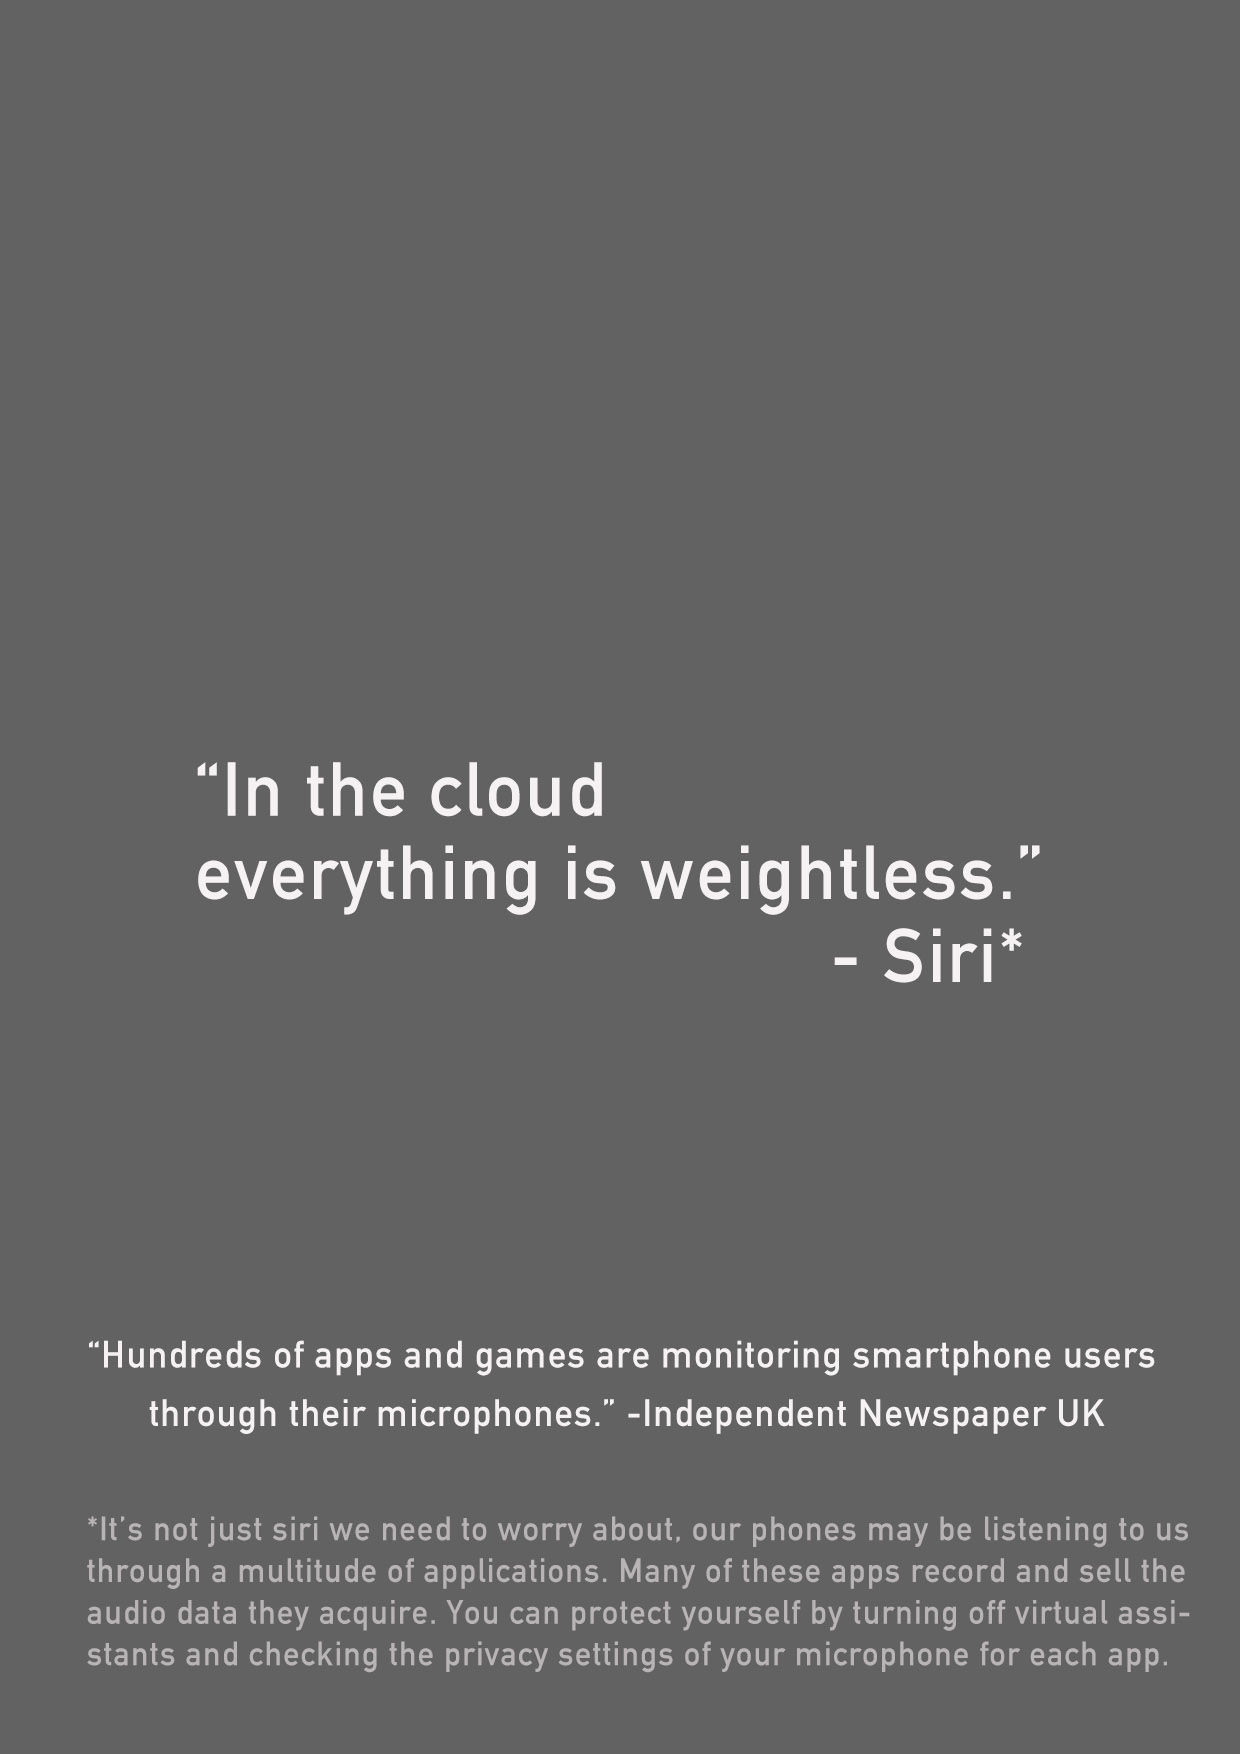 In the cloud, everything is weightless.